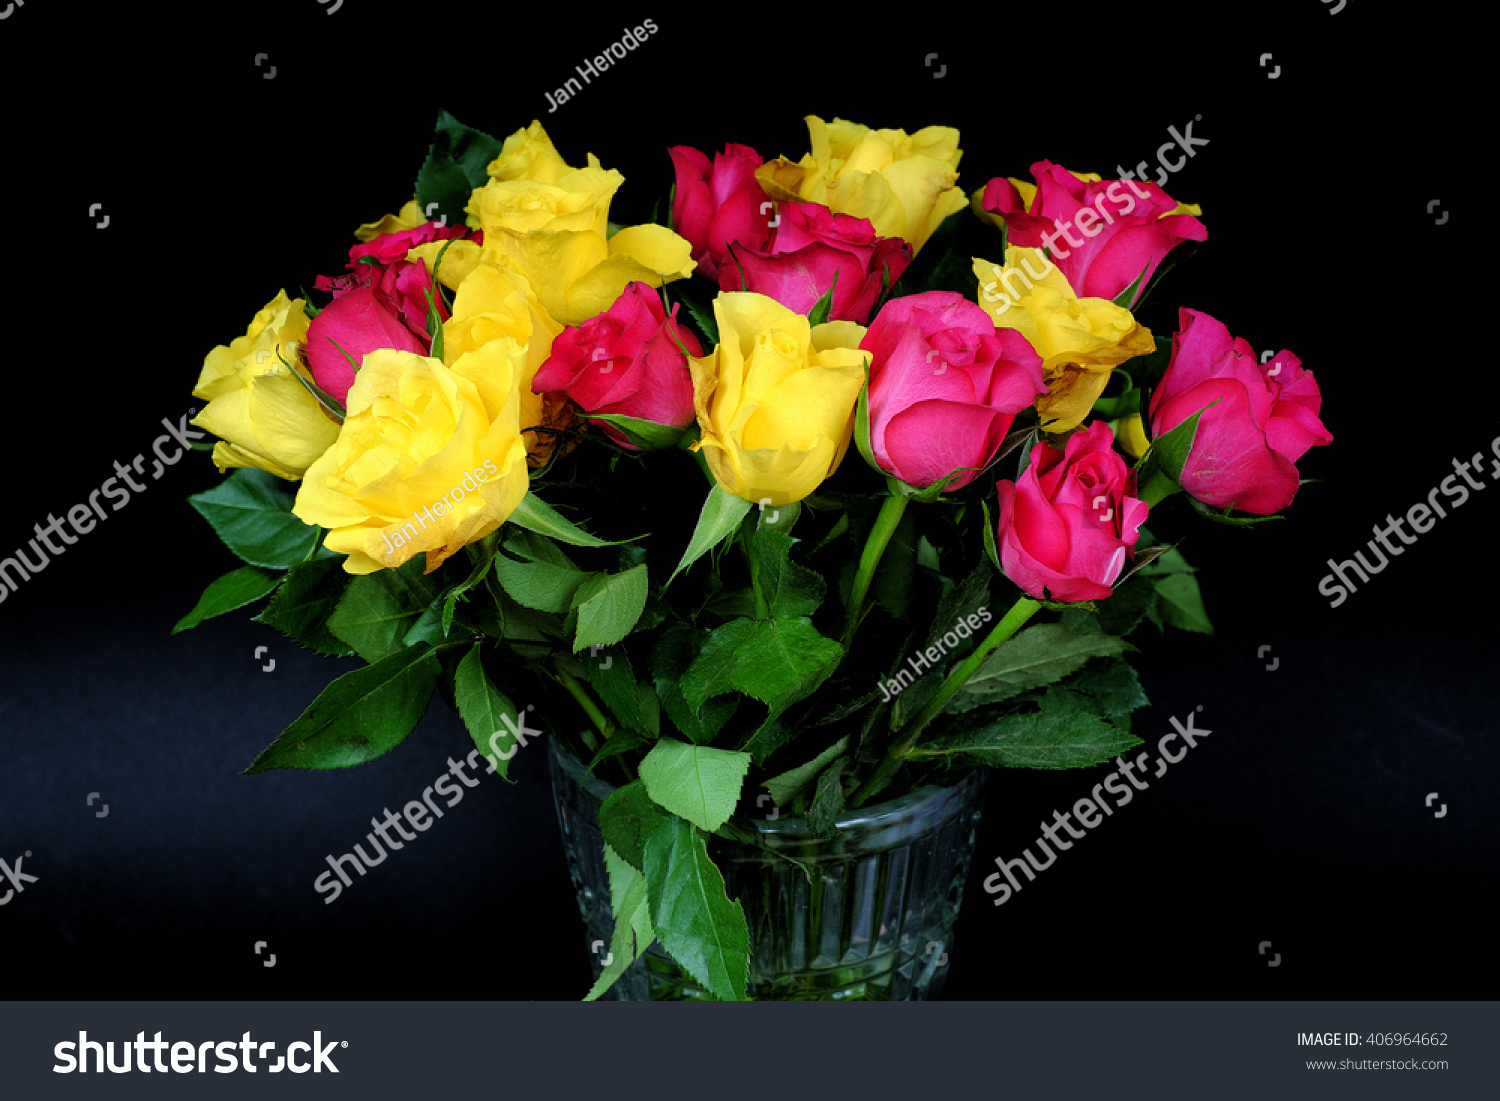 Royalty Free Bouquets Of Fading Yellow And Pink 406964662 Stock